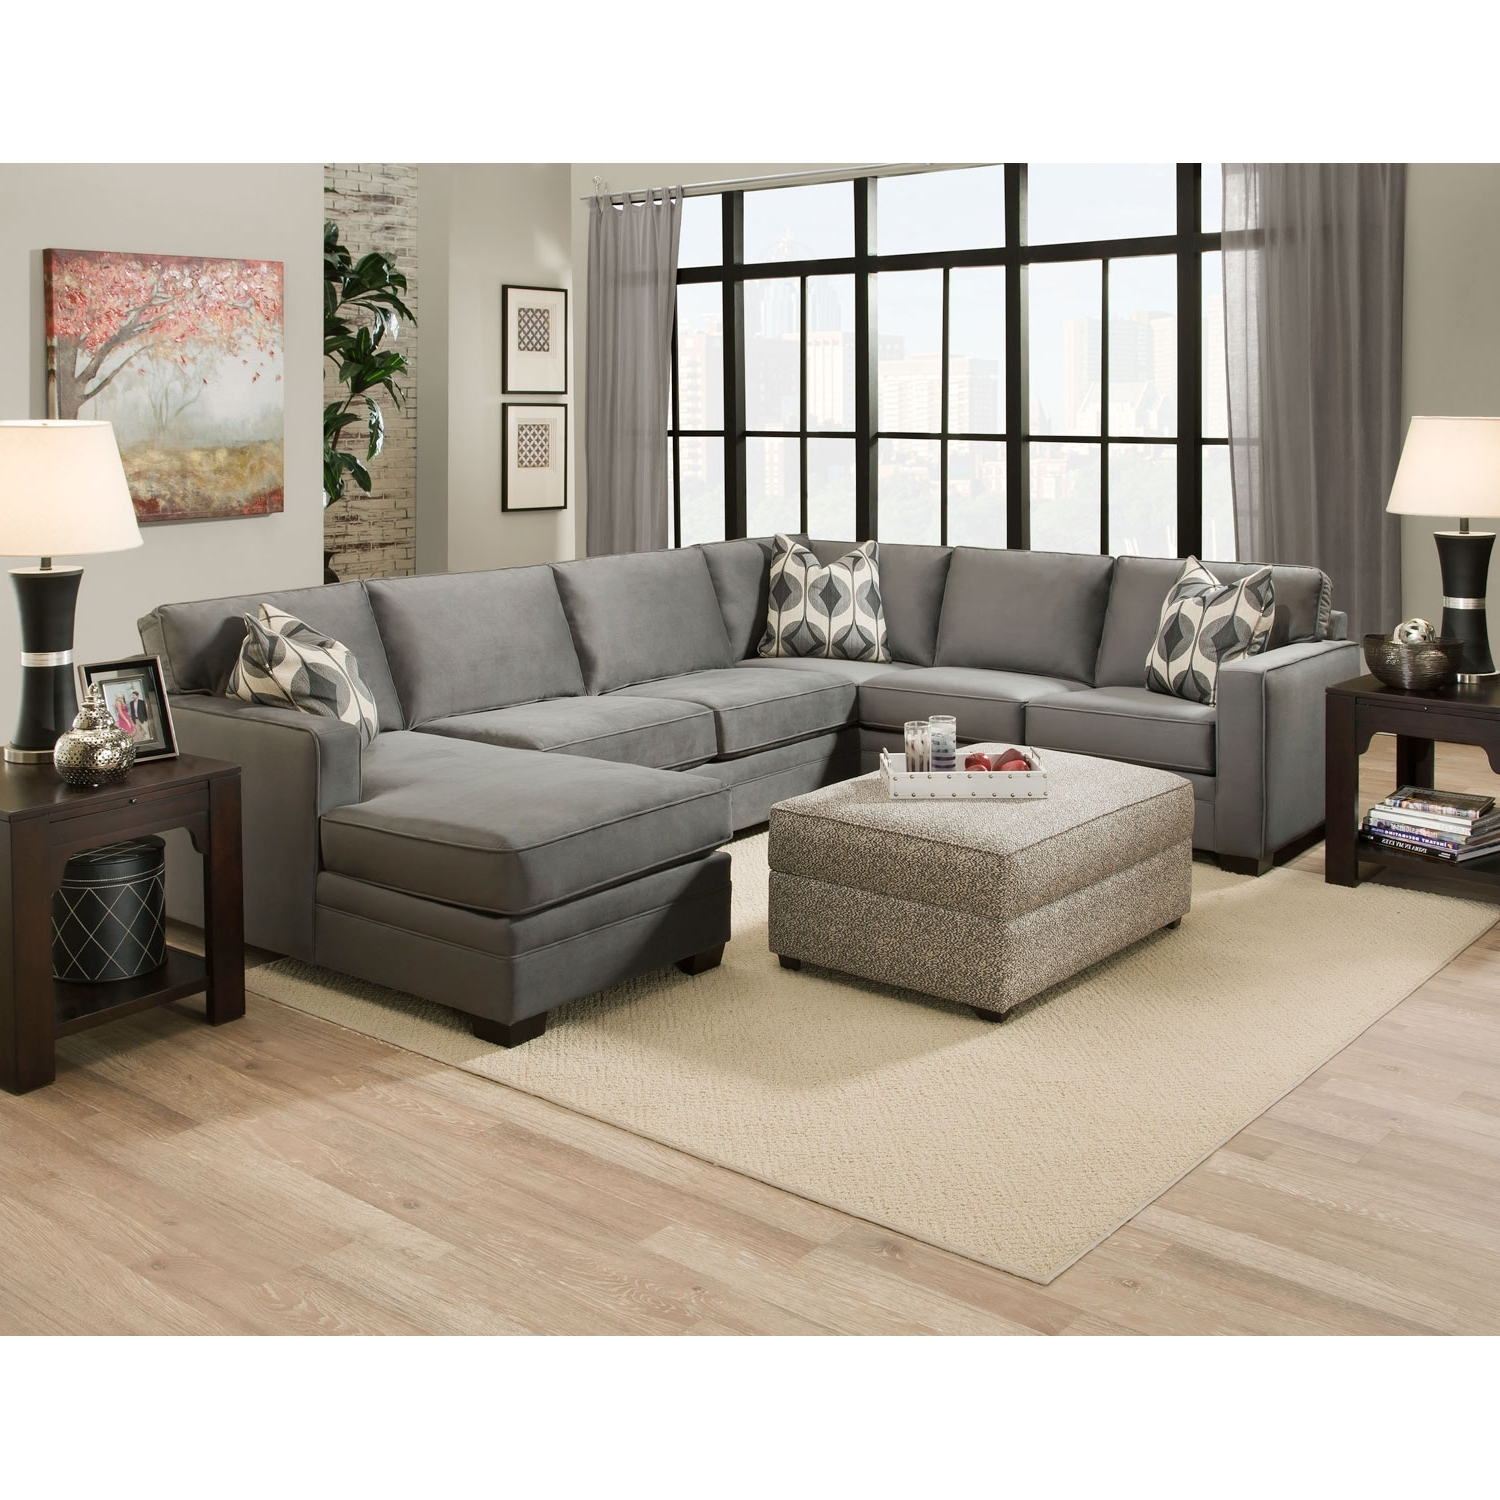 Well Known Gray Extra Large U Shaped Sectional Sofa With Chaise And Accent With Extra Large Sofas (View 20 of 20)